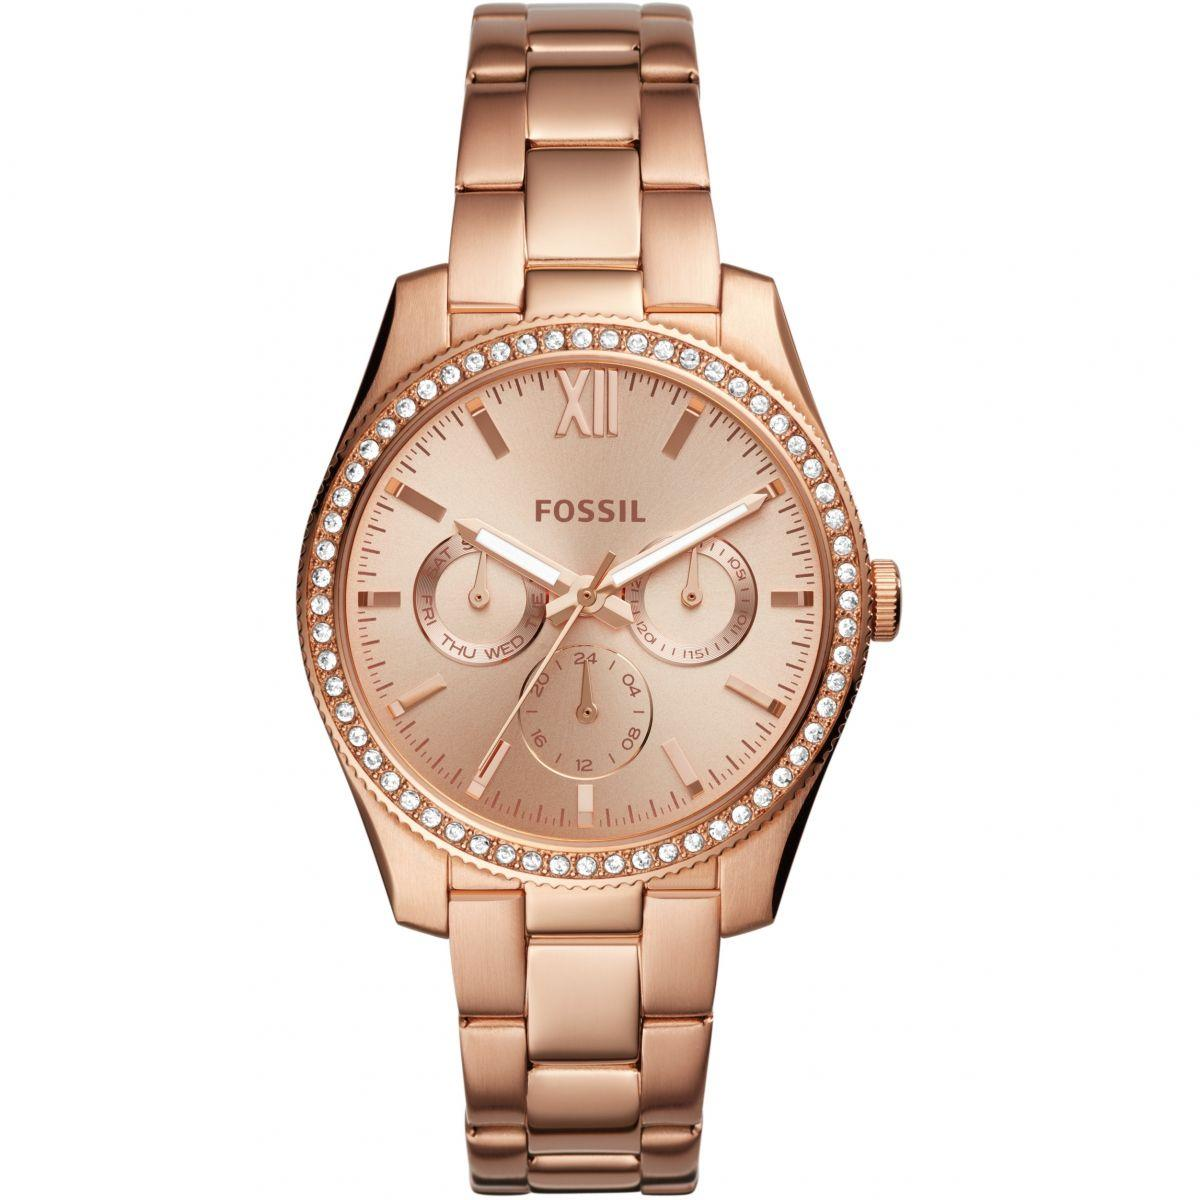 9755623cf2a FOSSIL ES4315 Stainless Steel Analogue Watch For Women - Rose Gold